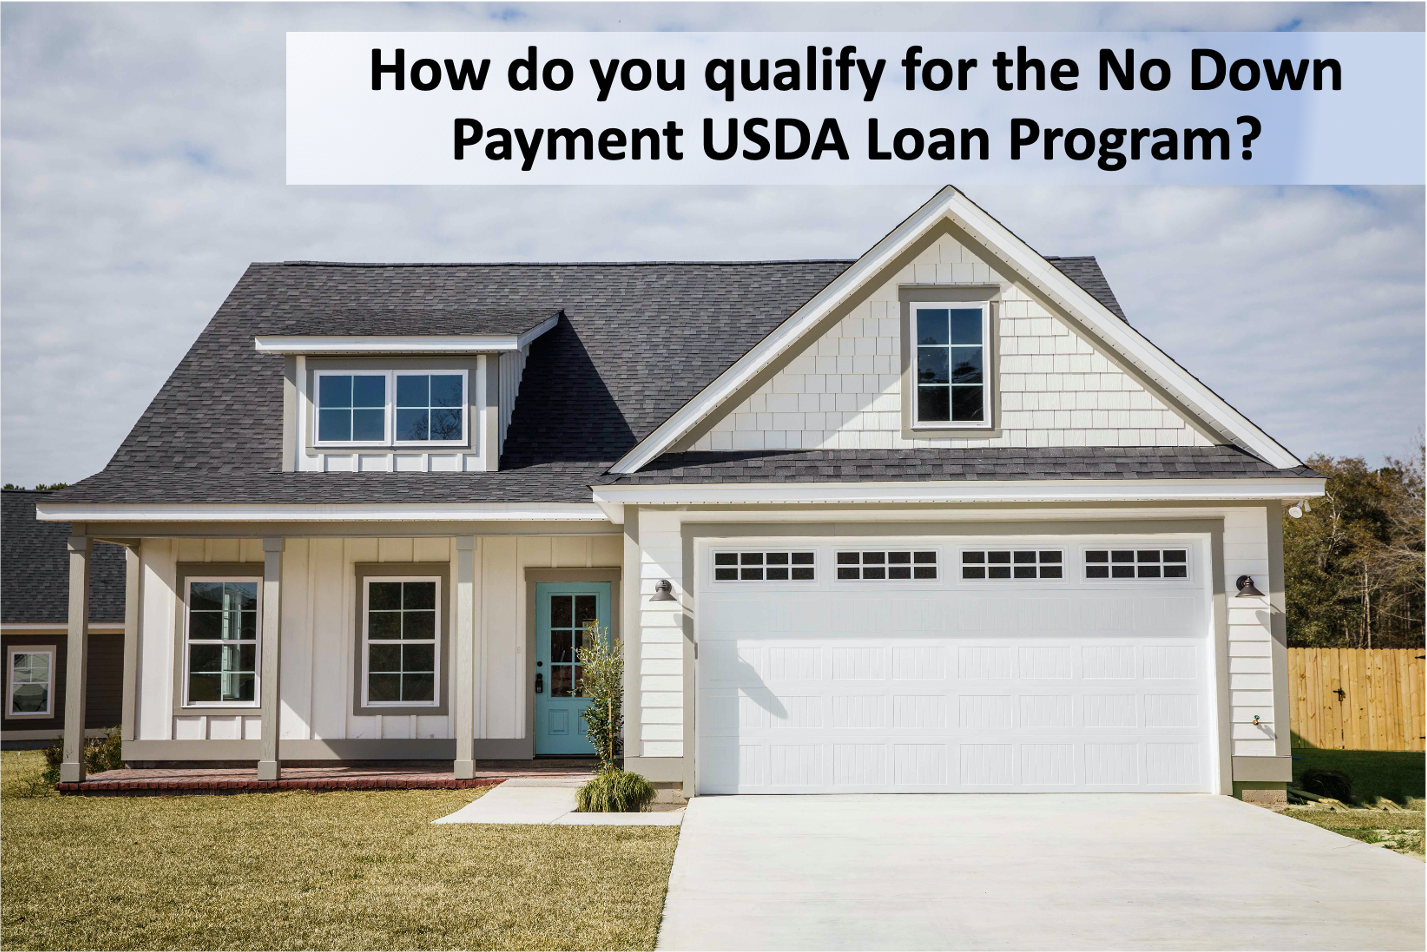 How do you qualify for the No Down Payment USDA Loan Program?